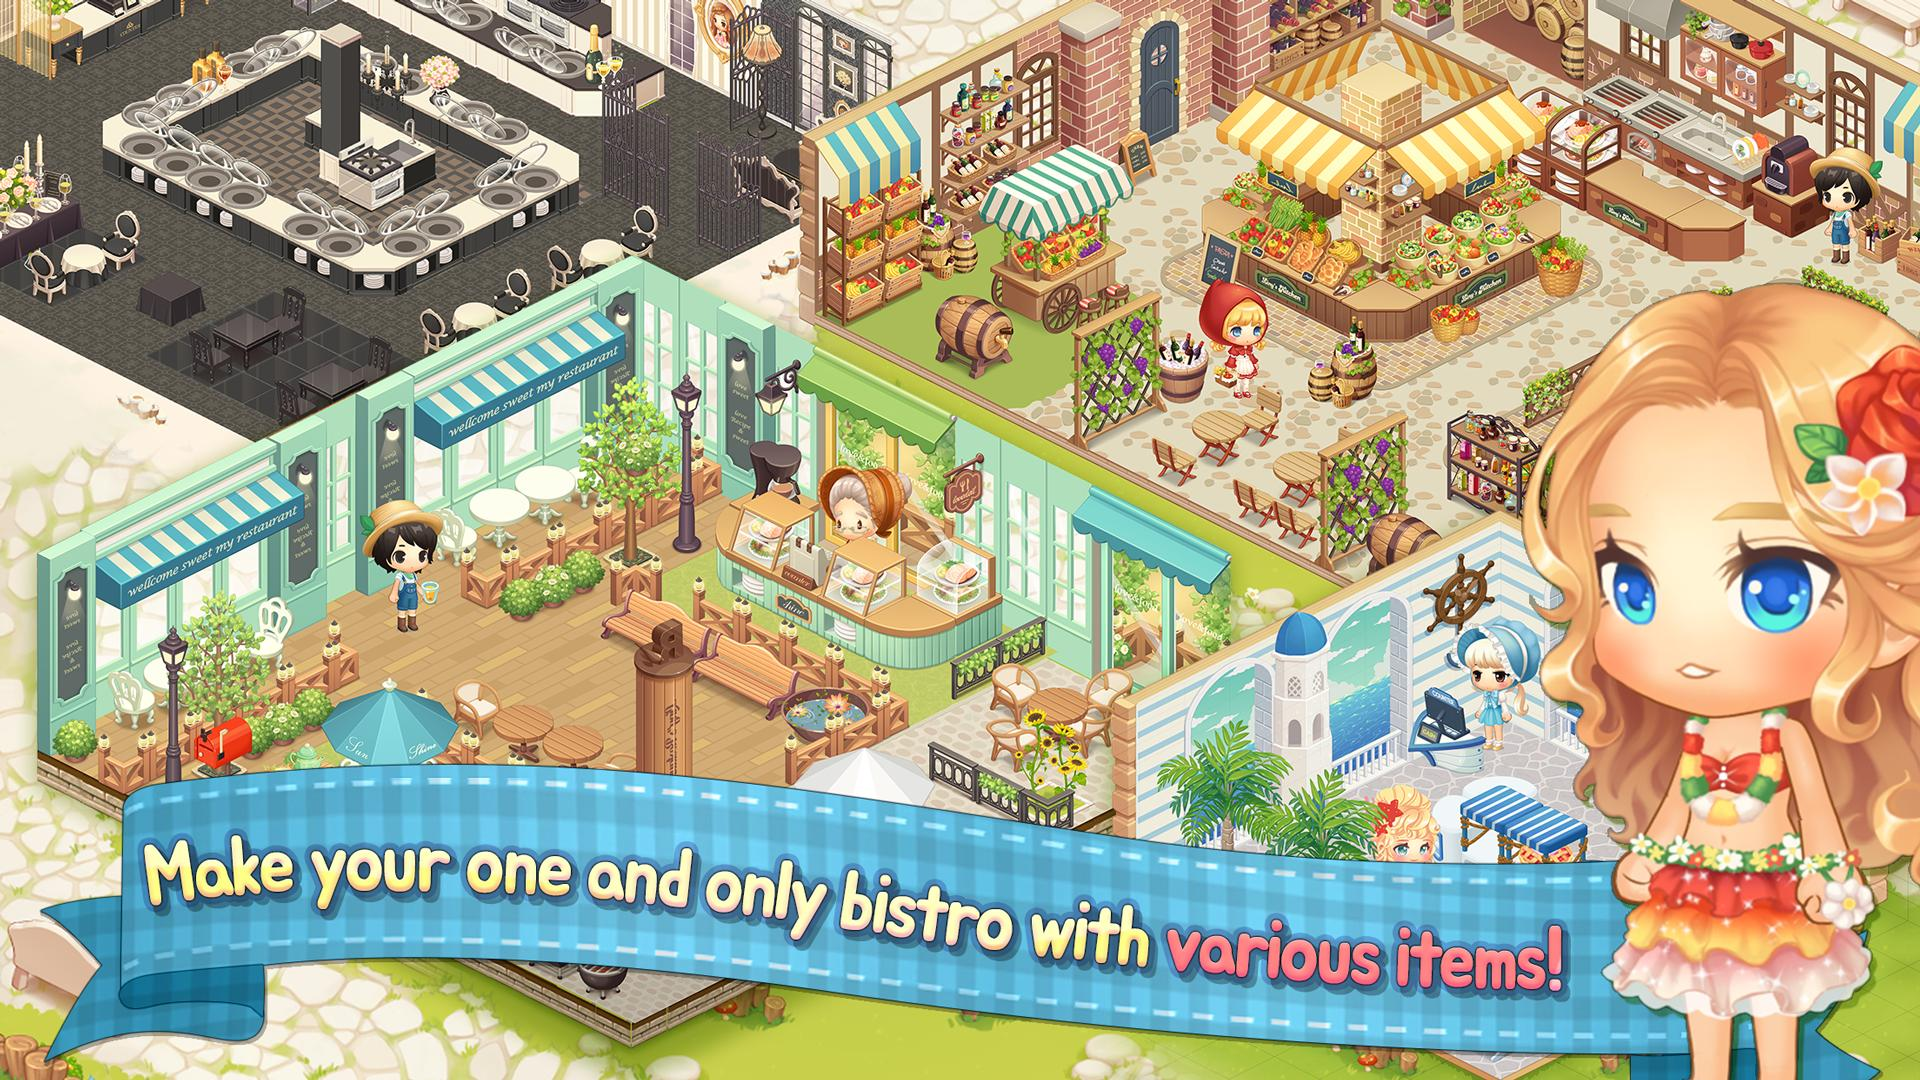 My Secret Bistro Play cooking game with friends 1.6.4 Screenshot 17